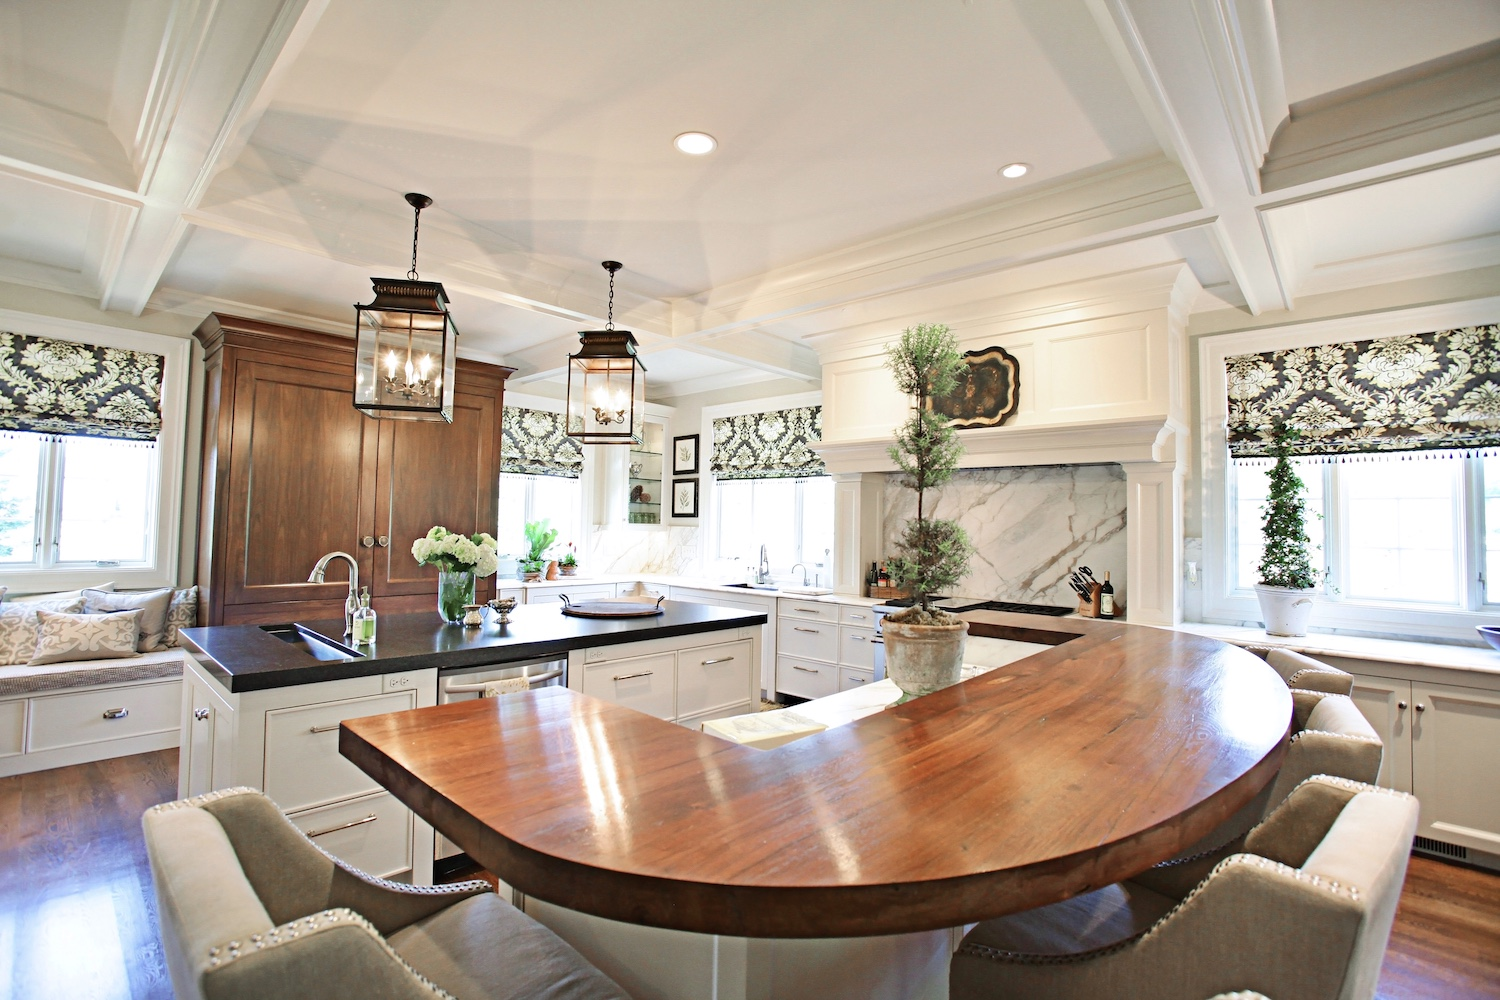 custom-kitchen-dbi.jpg